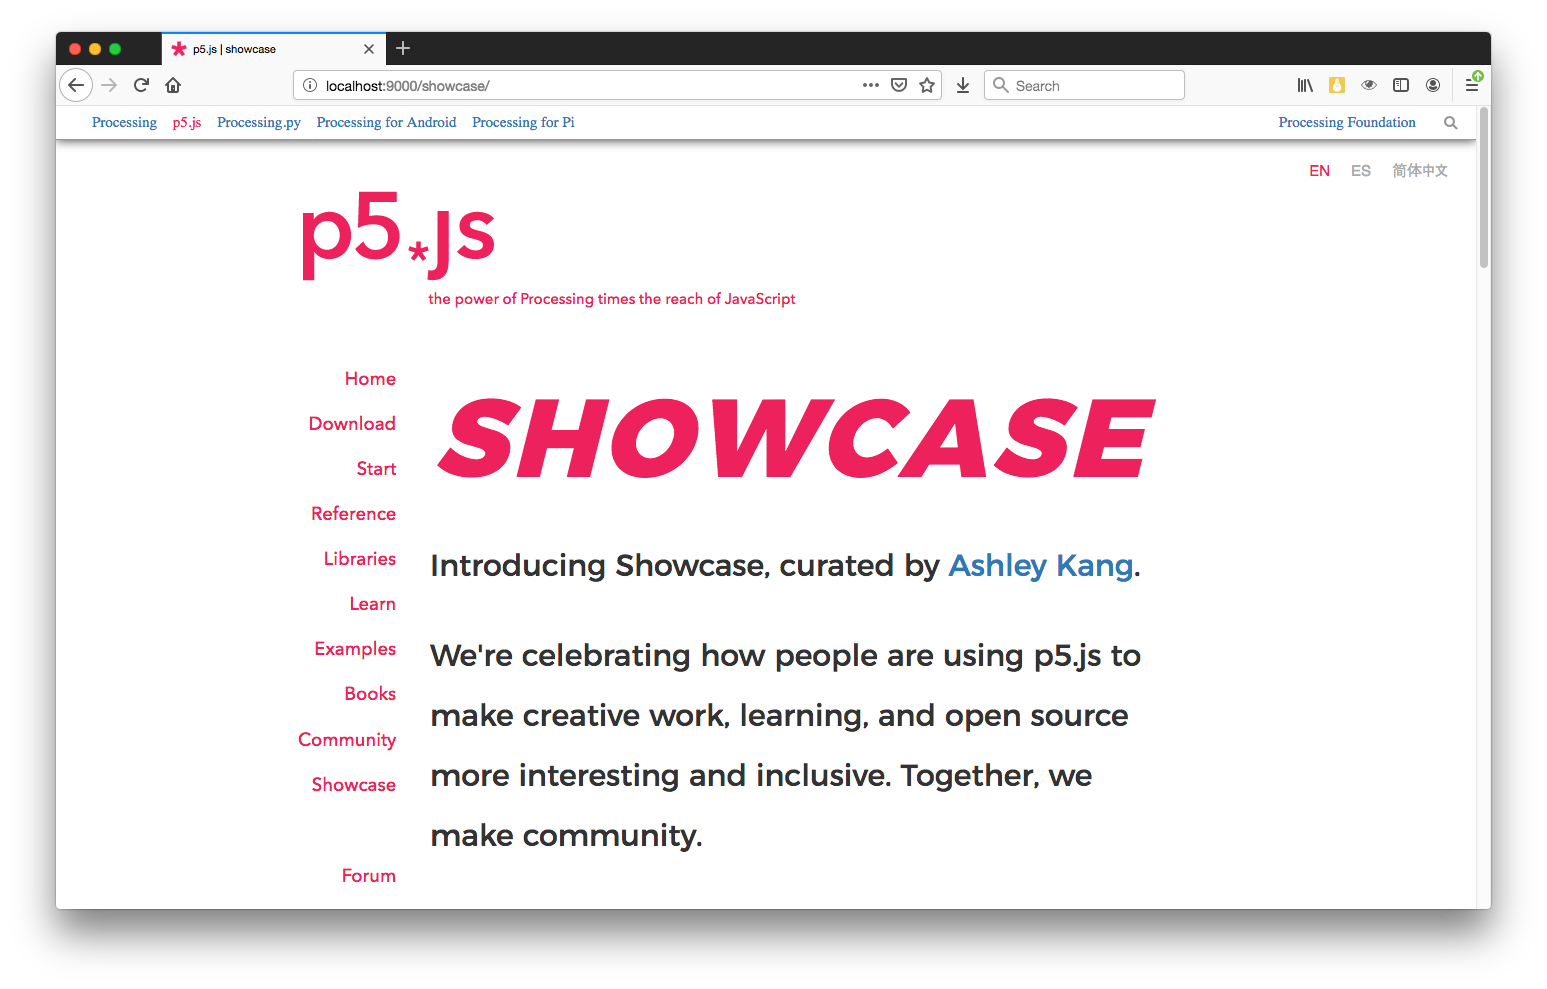 A screenshot of the new Showcase page on p5js.org.